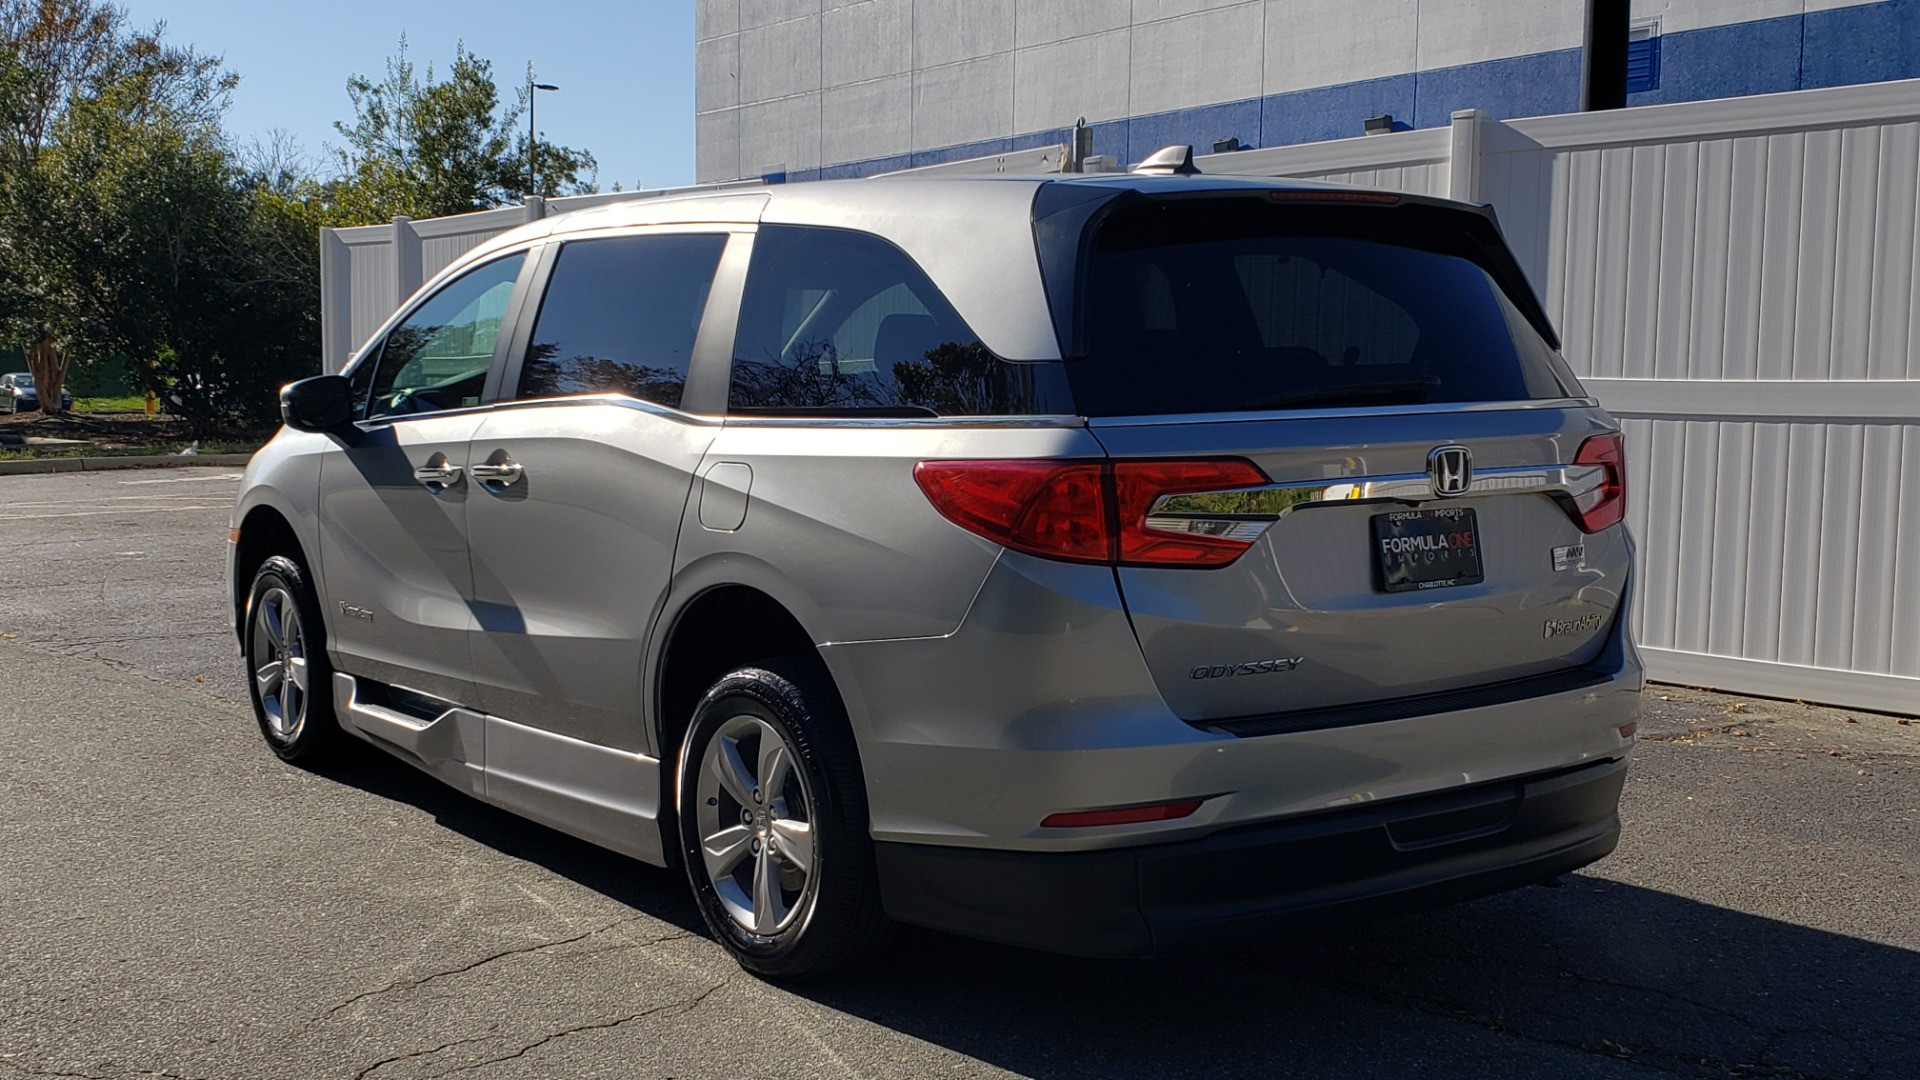 Used 2019 Honda ODYSSEY EX-L BRAUNABILITY / NAV / RES / LKA / BLUE-RAY / SUNROOF / REARVIEW for sale $49,999 at Formula Imports in Charlotte NC 28227 3